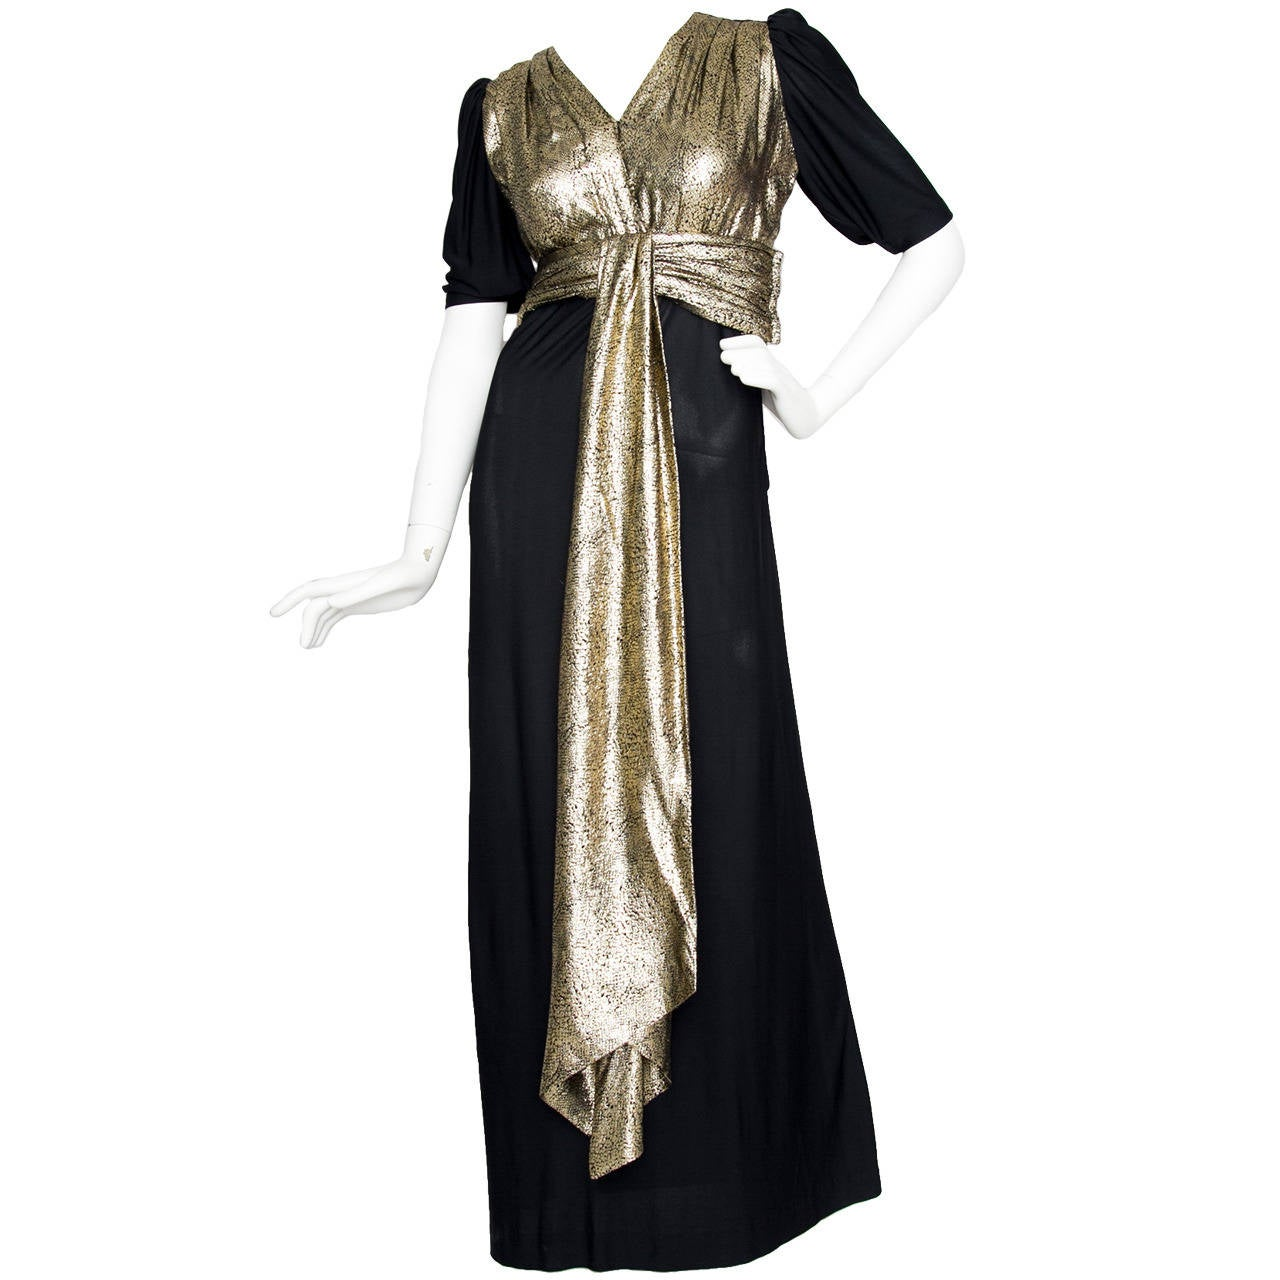 Yves Saint Laurent Black Silk and Gold Lamé Dress, 1970s  For Sale